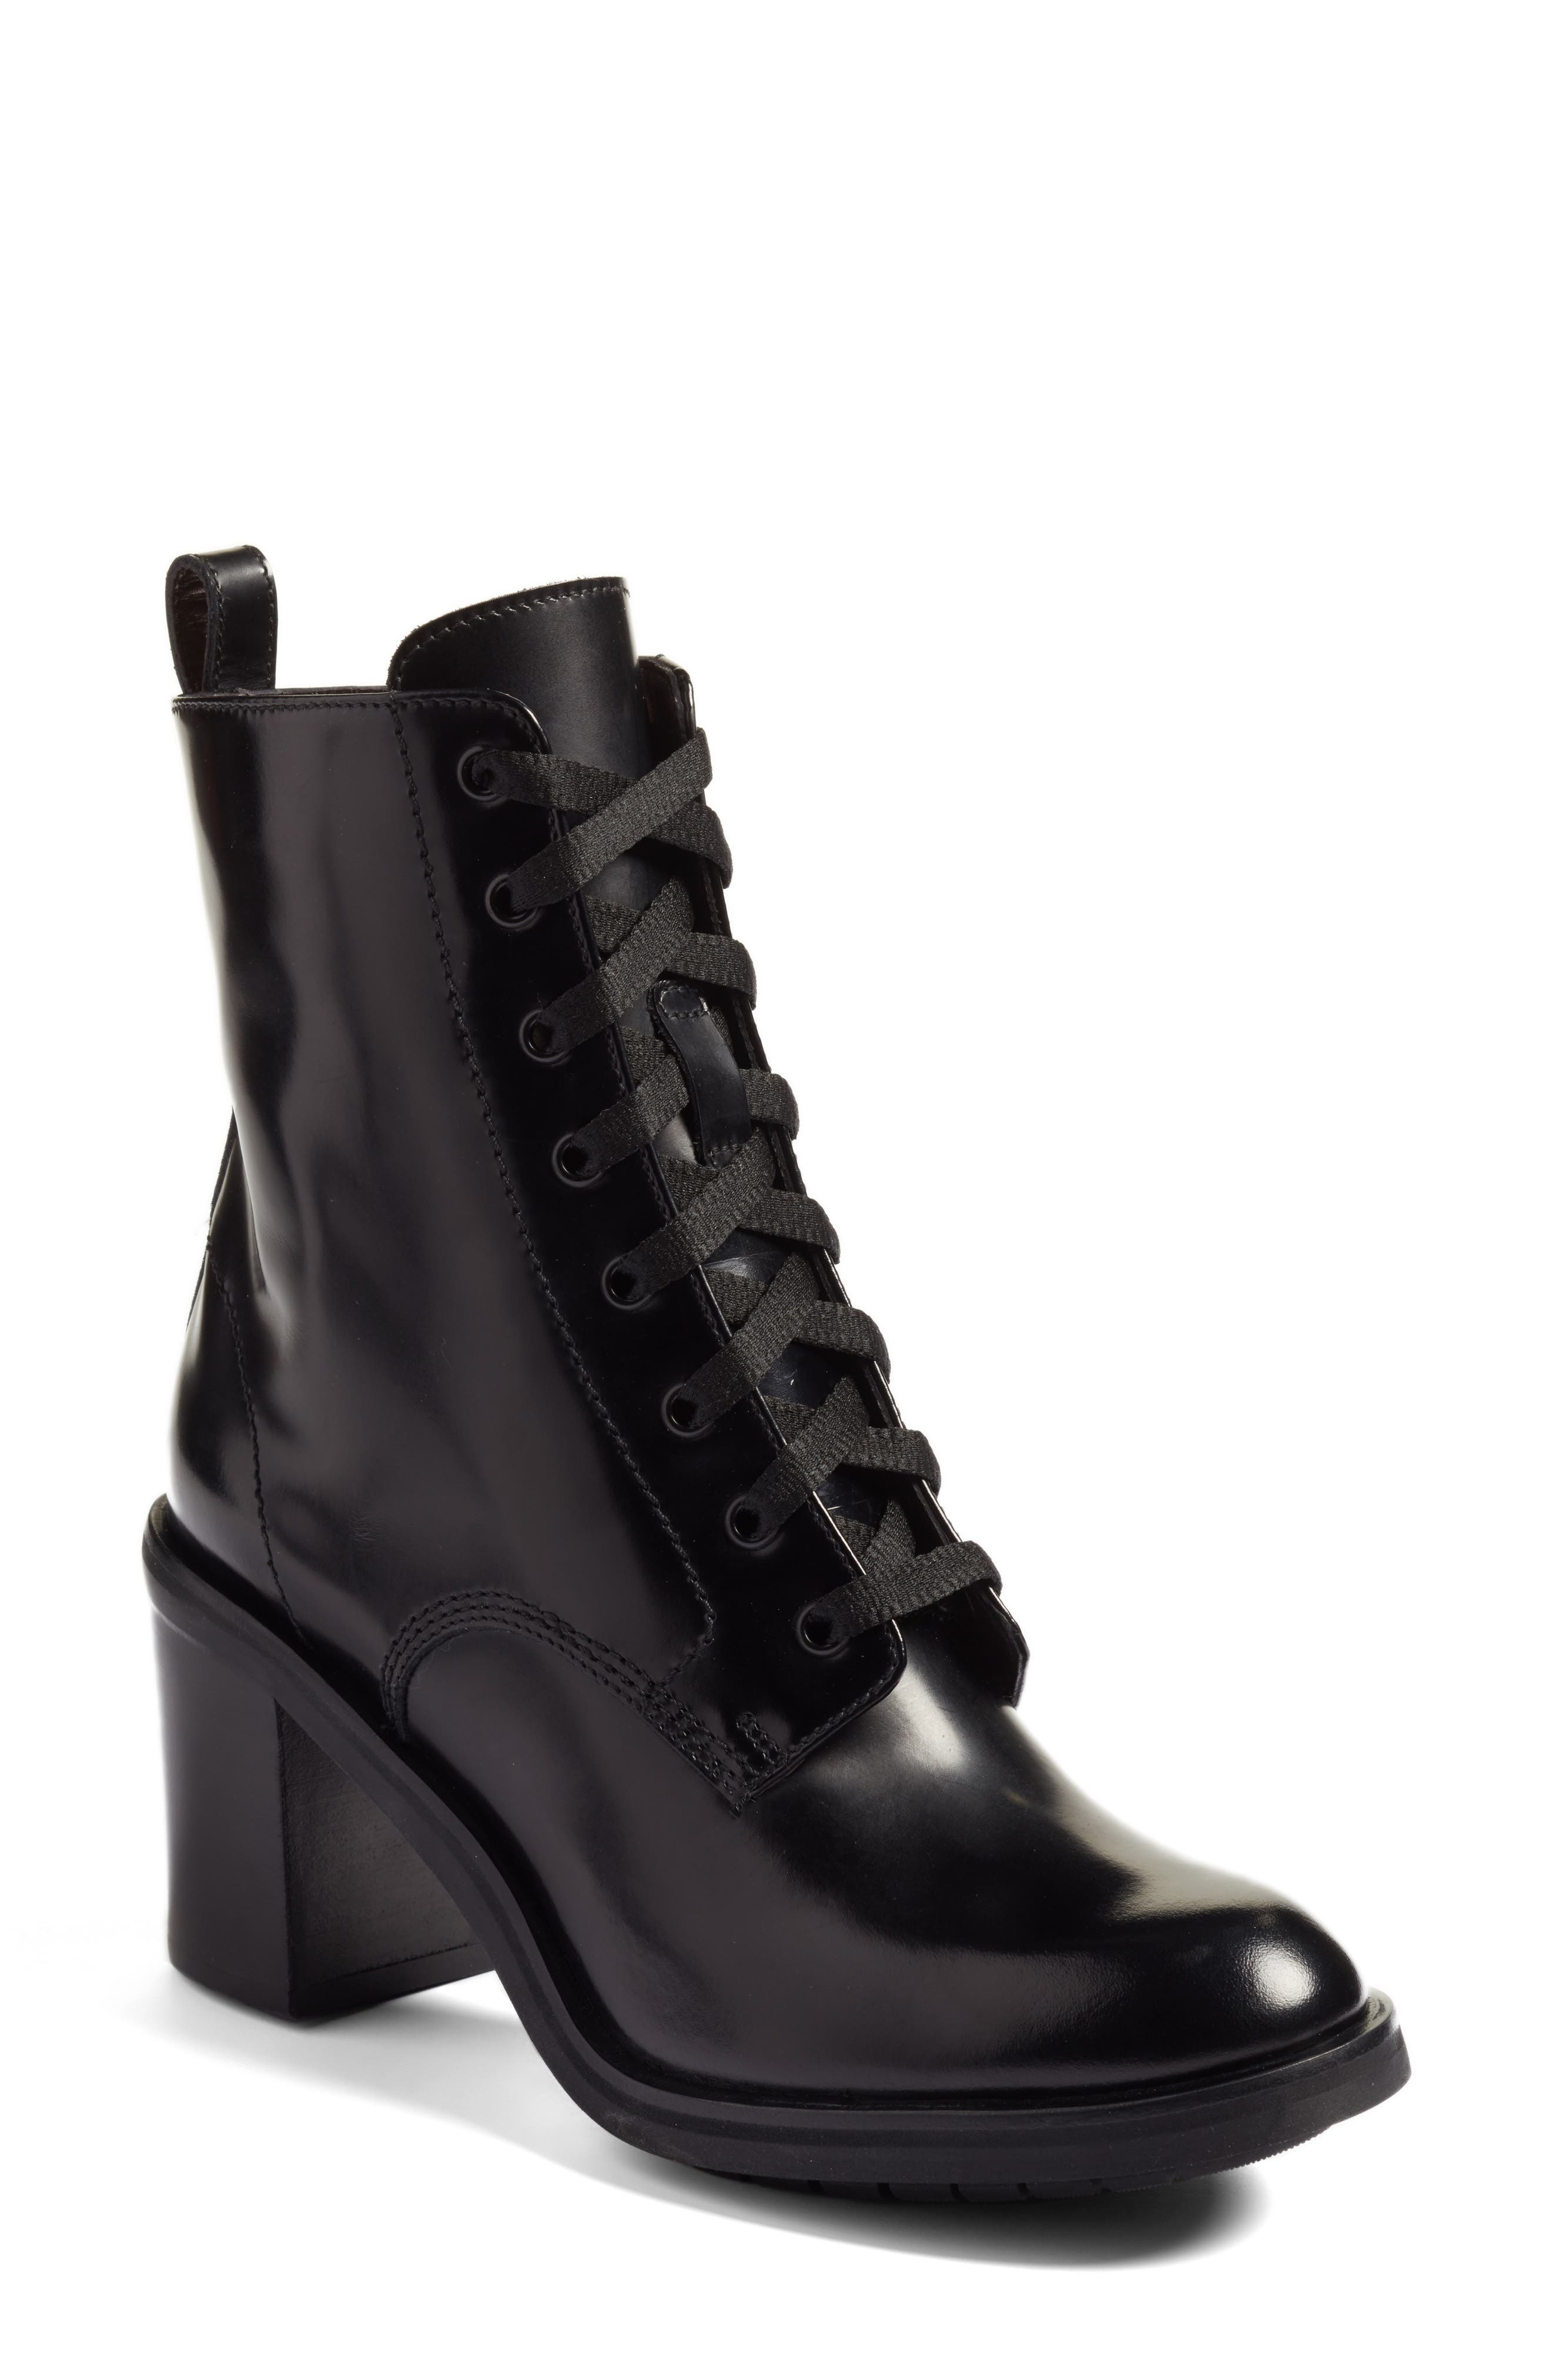 Alternate Image 1 Selected - AGL Urban Combat Boot (Women)